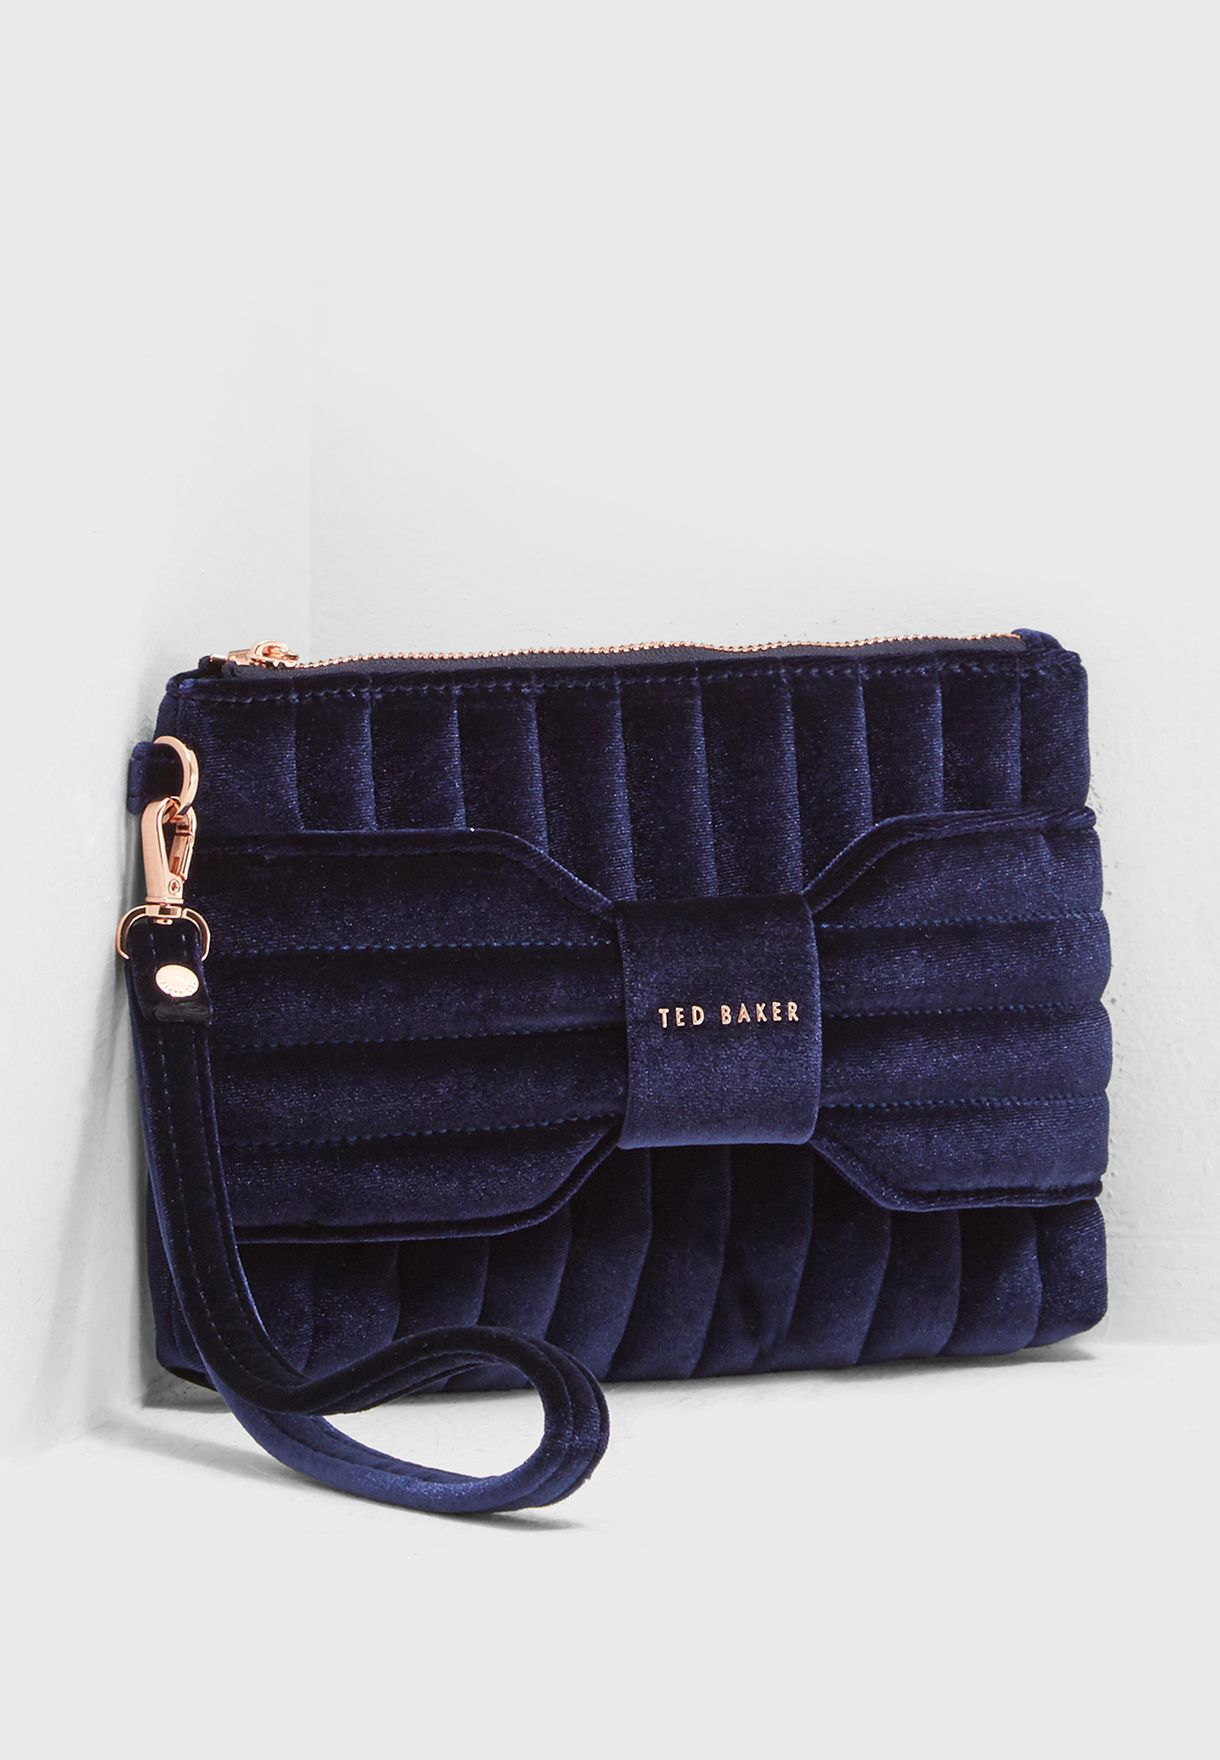 aef48256cea6 Shop Ted baker navy Junie Bow Clutch 149016 for Women in Oman ...